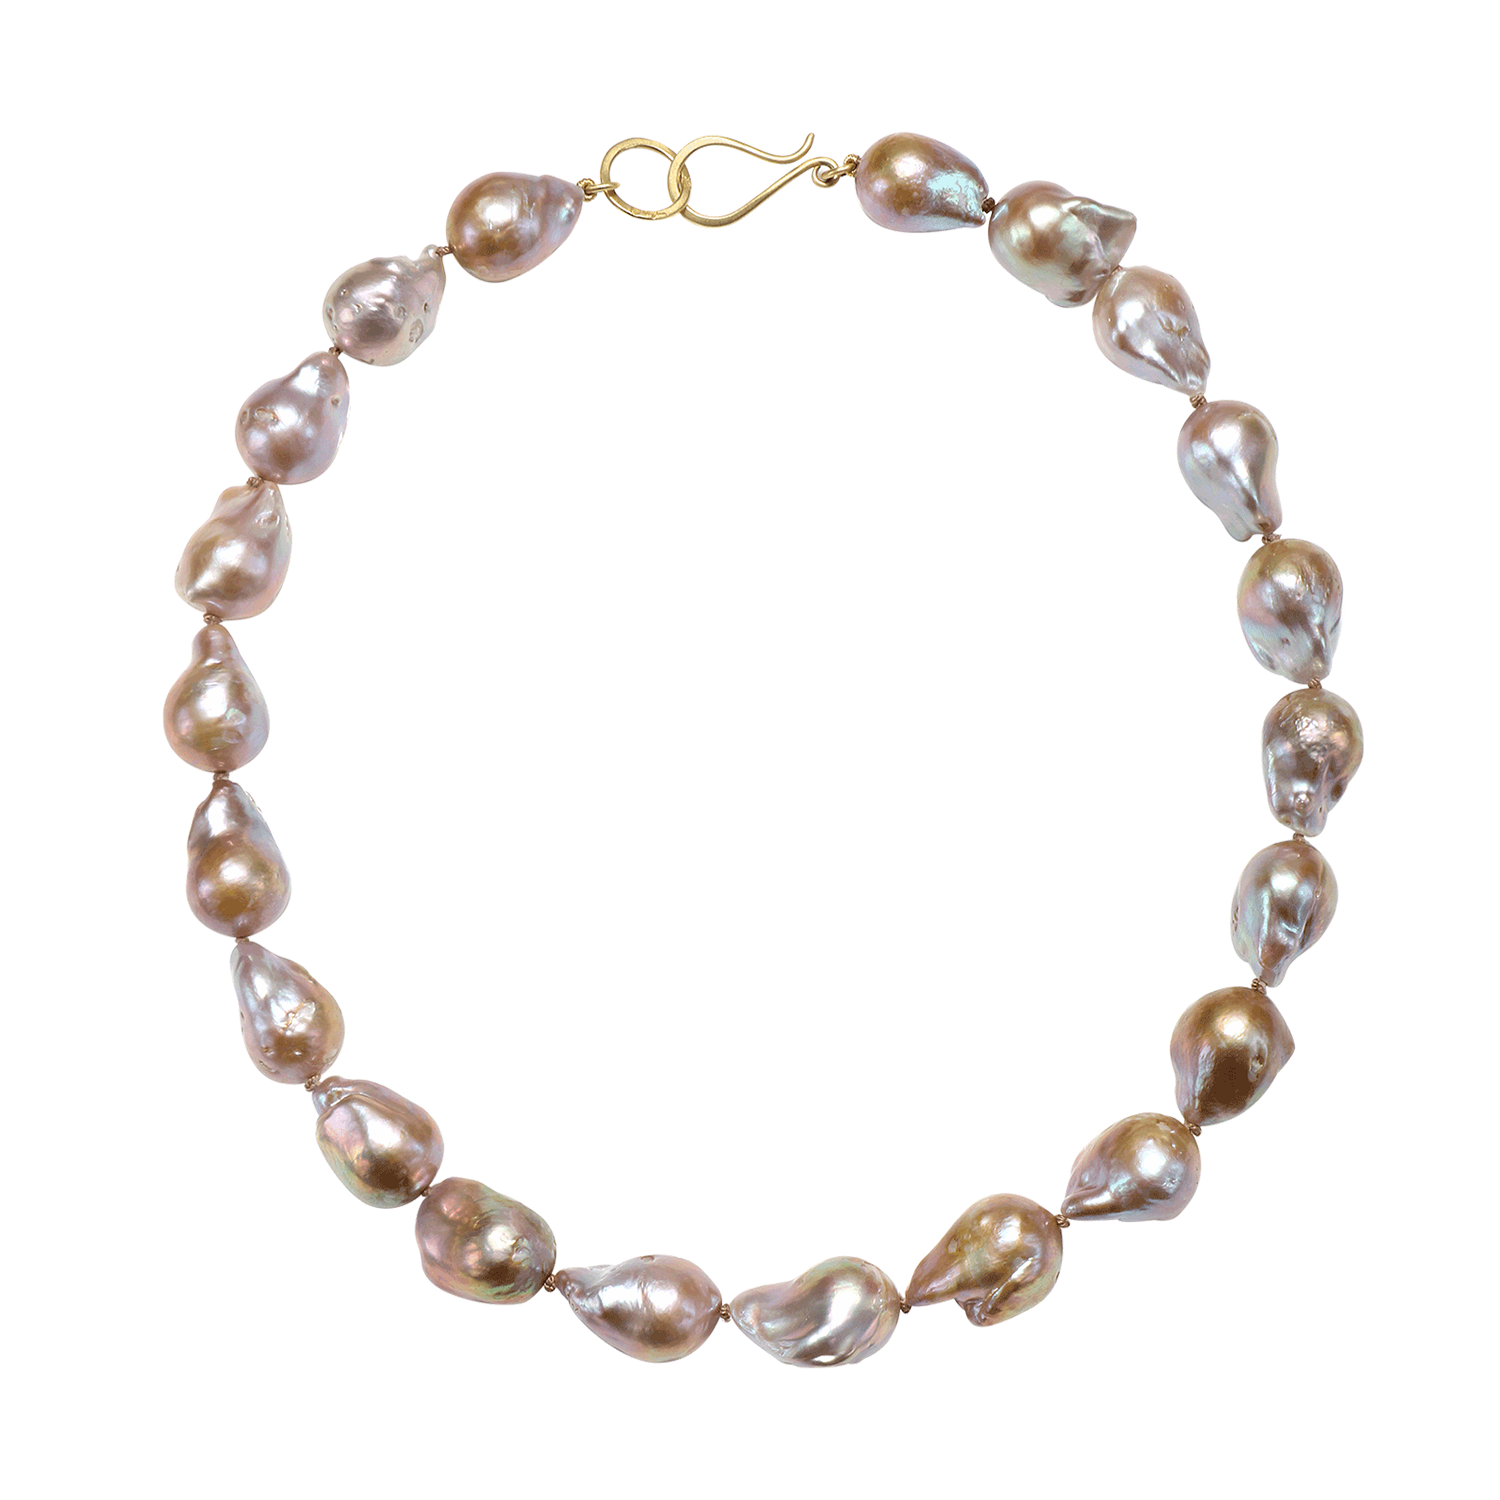 Oyster clipart pink pearls. Cultured pearl necklace marvellous